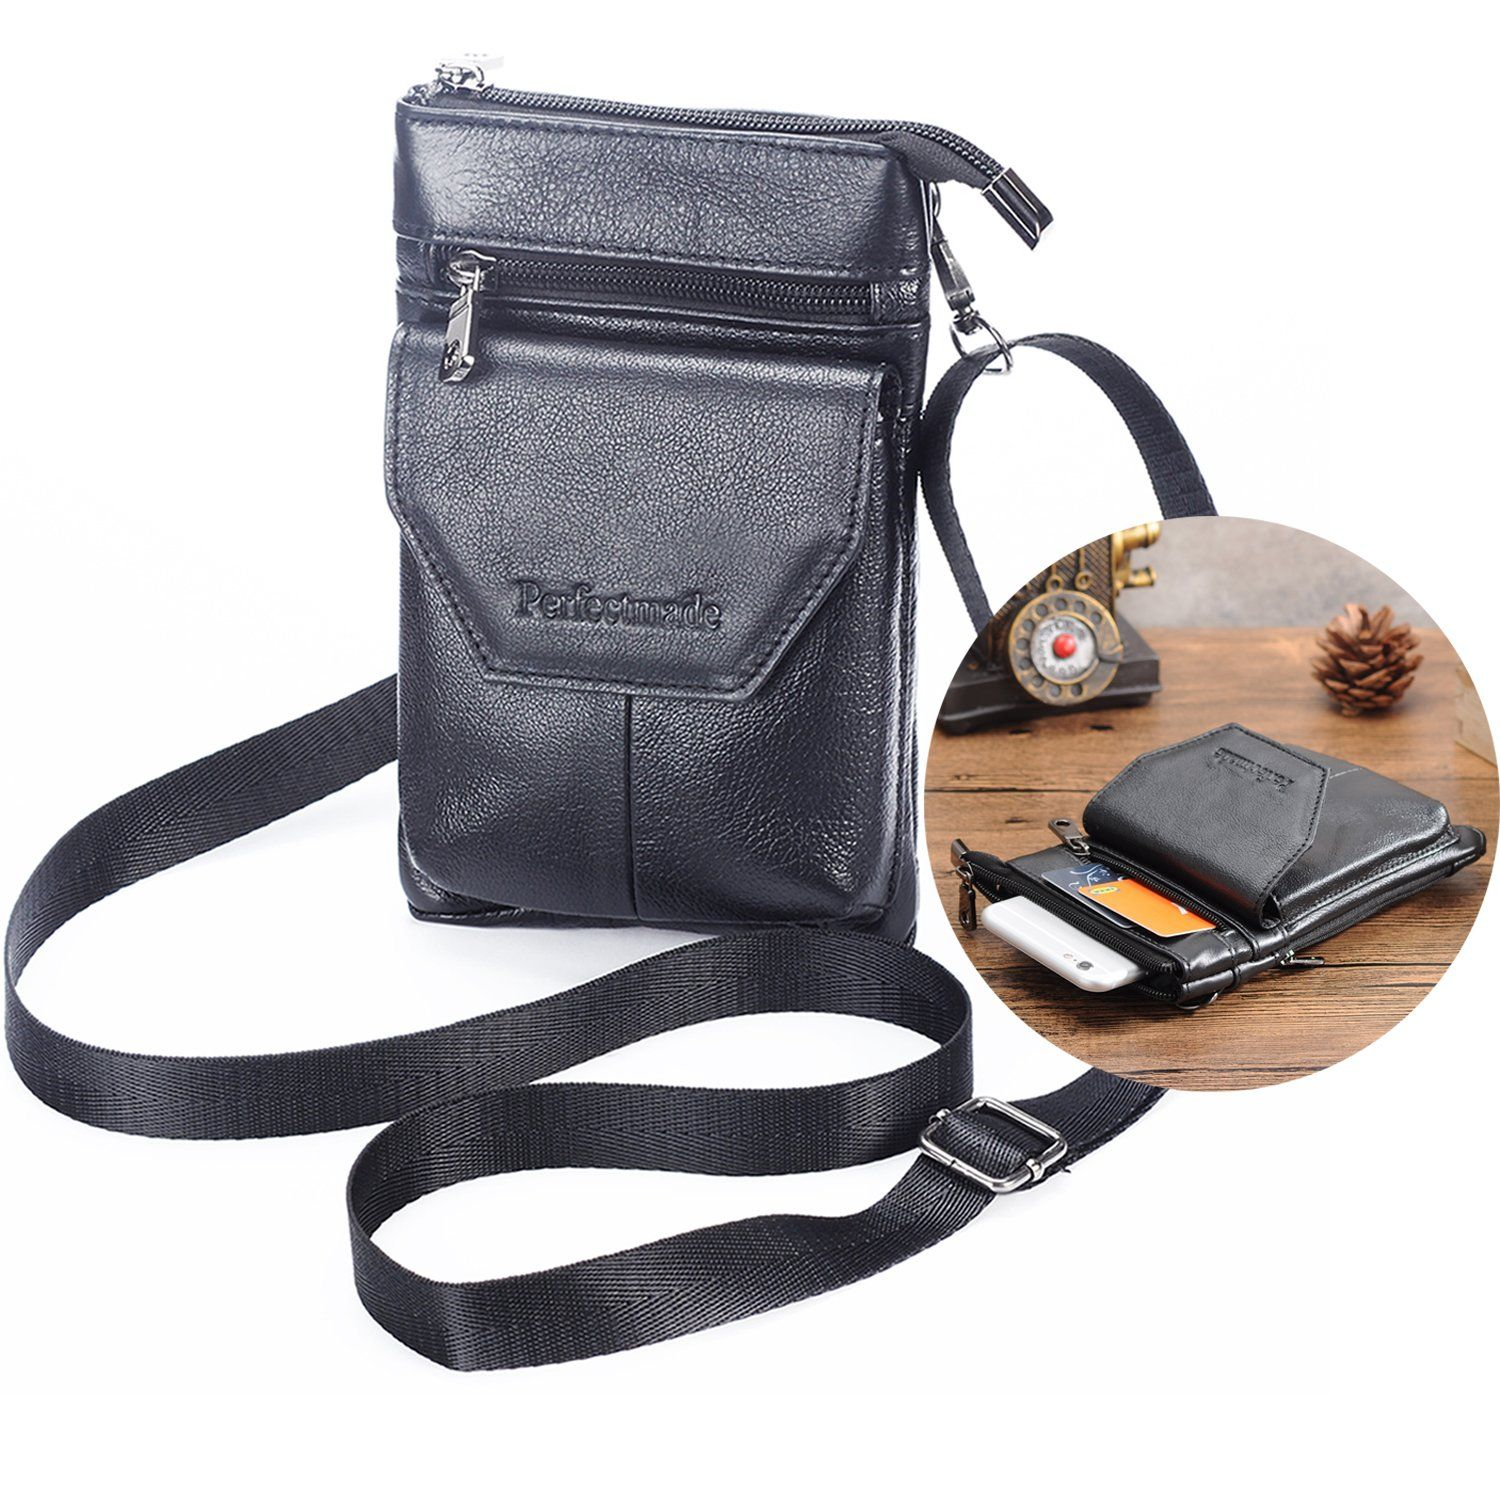 Cell phone crossbody purse iphone 7 plus pouch with belt